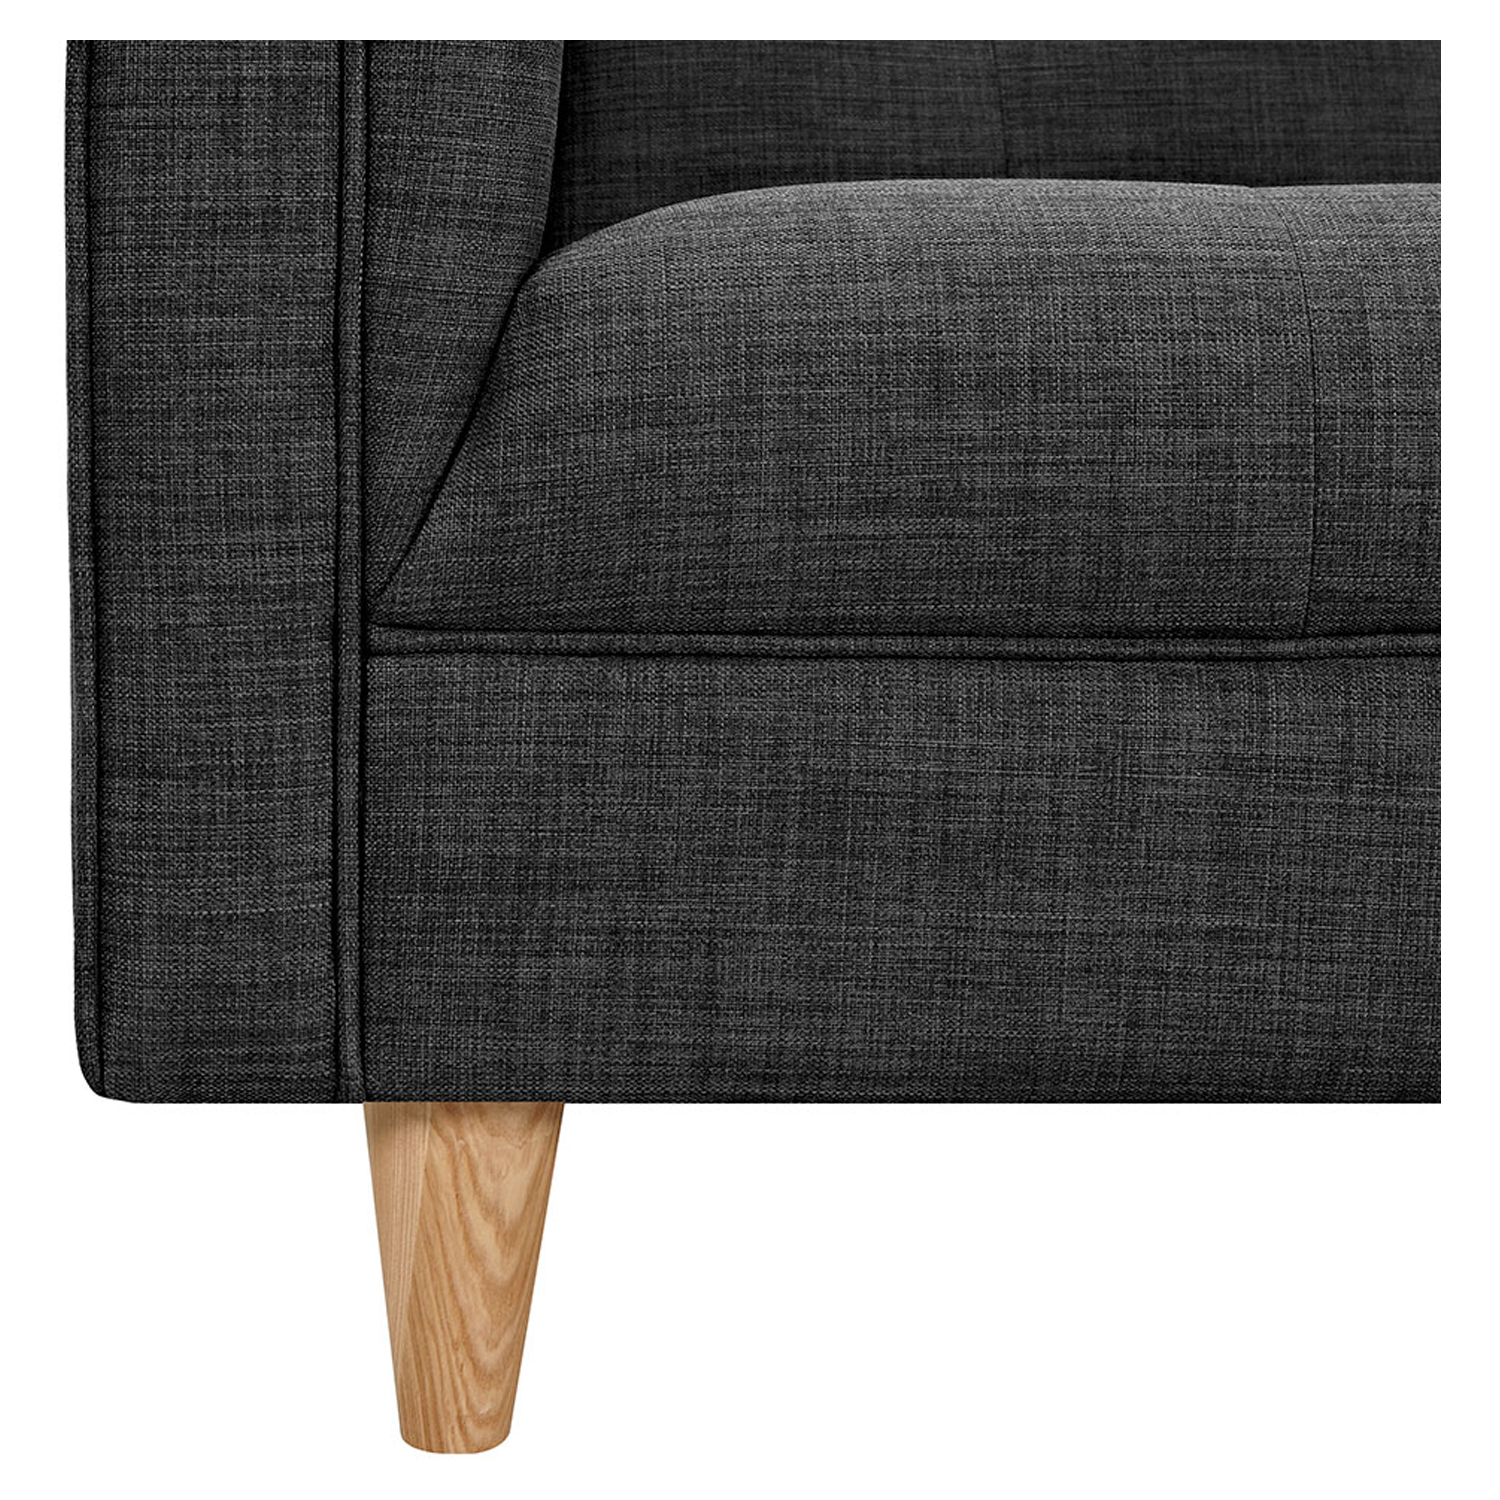 Kaja Sofa - Charcoal Gray, Tufted - NYEK-223340